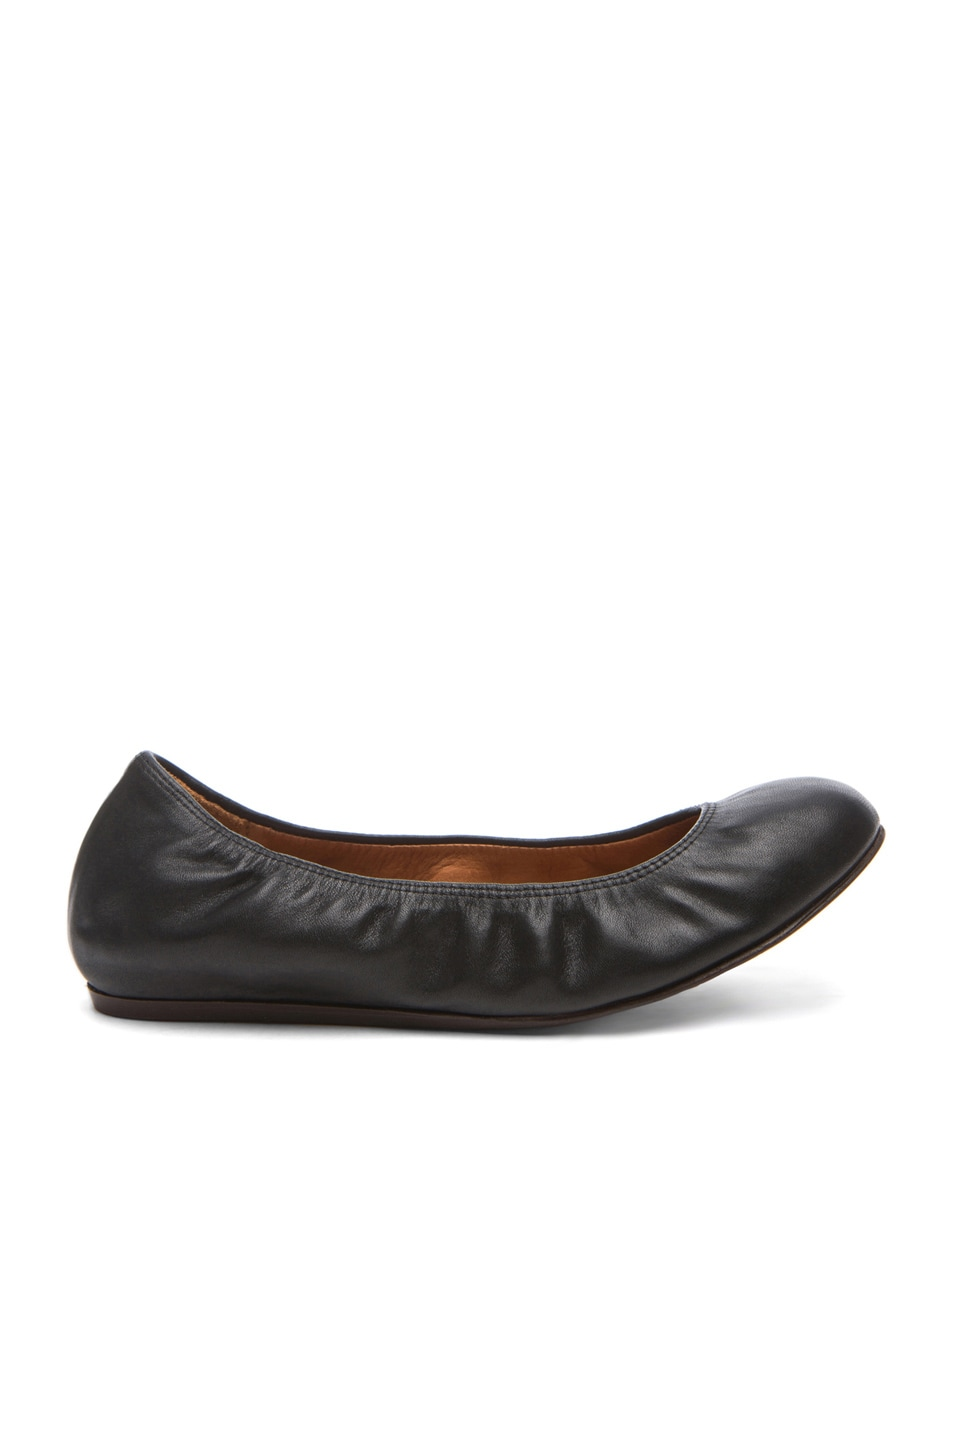 Image 1 of Lanvin Lambskin Leather Ballerina Flats in Noir